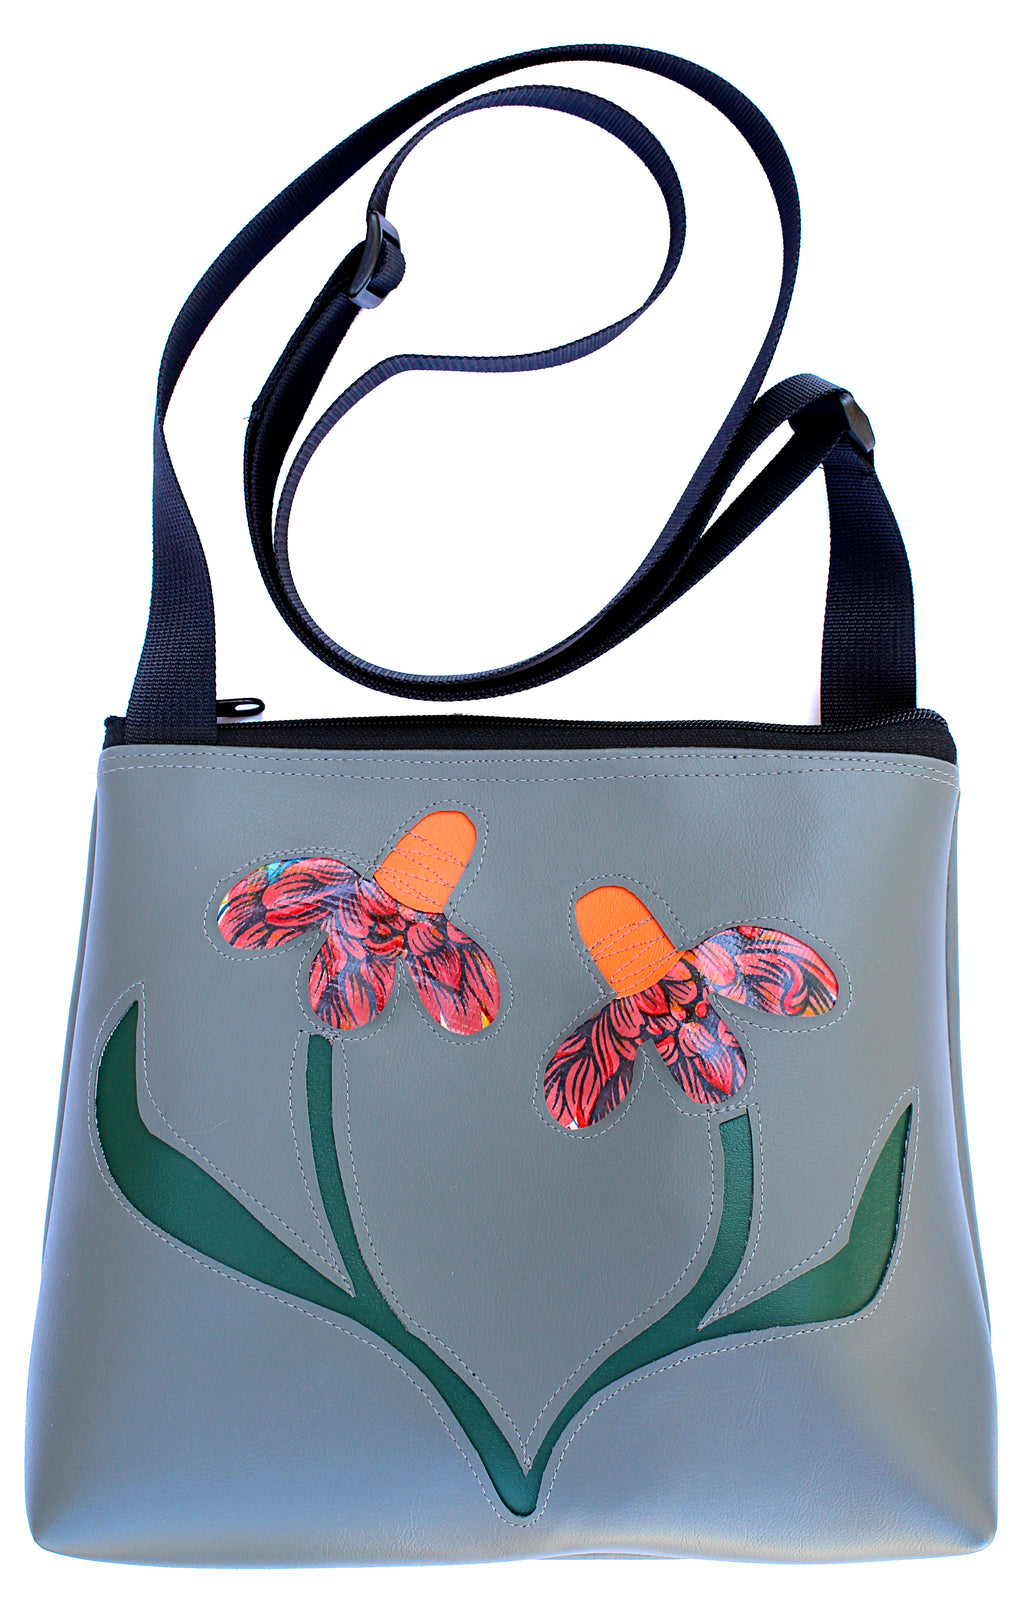 Wild Flowers on Grey mid-size crossbody